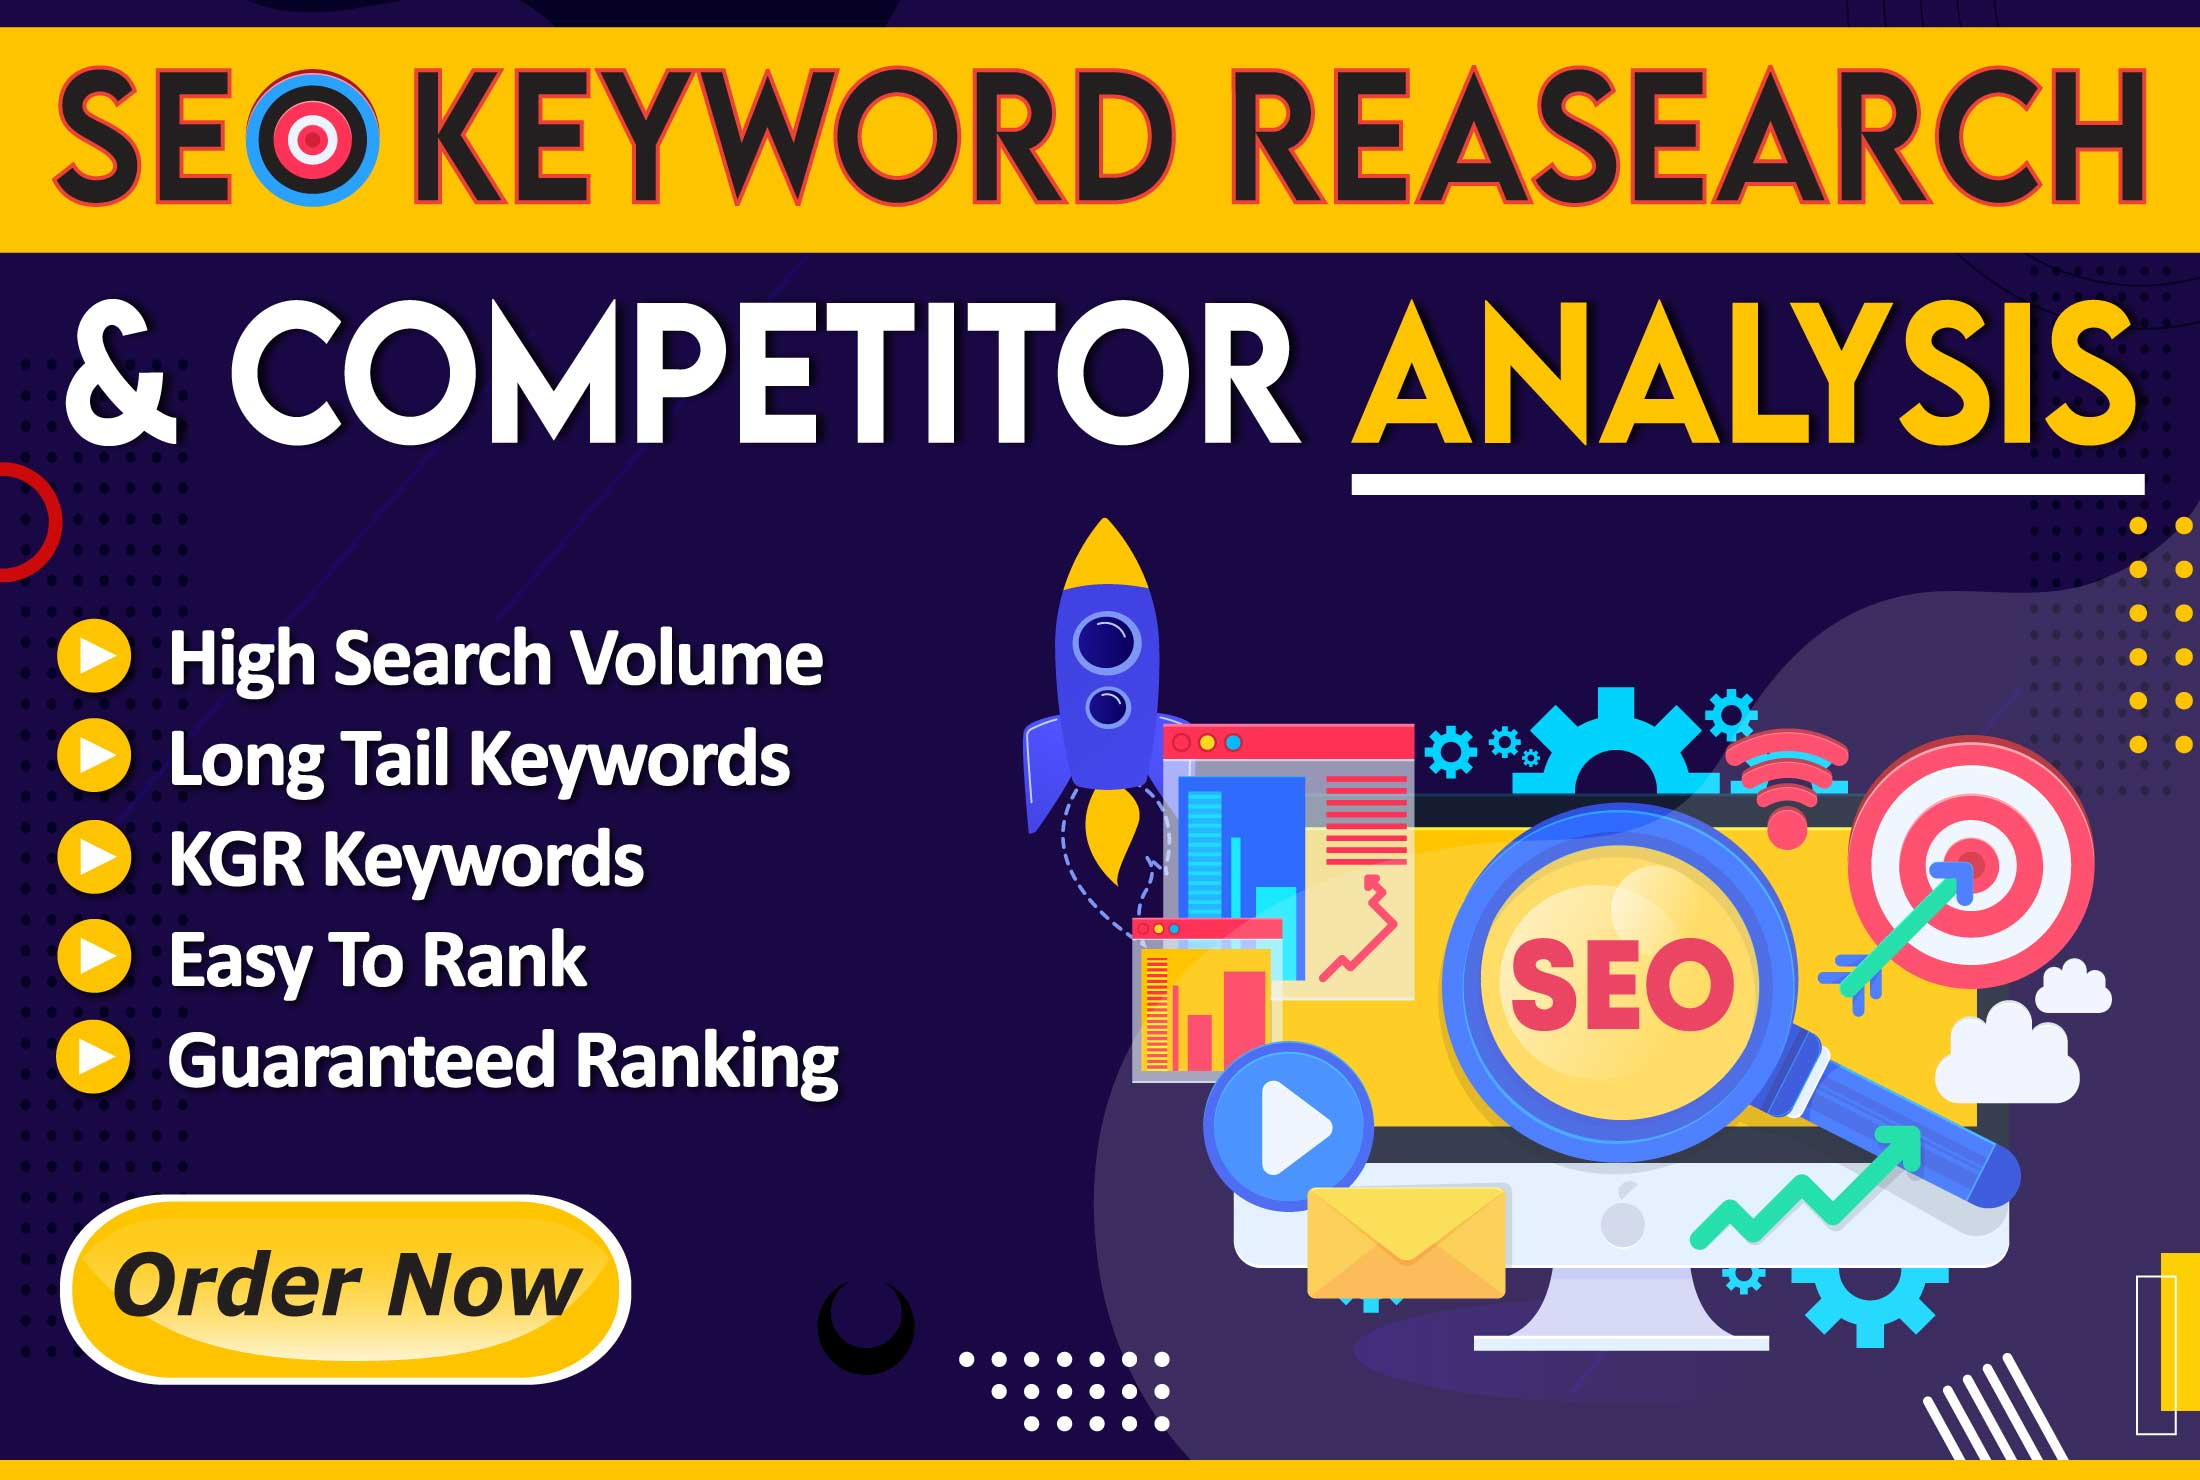 I will do effective SEO keyword research and competitor analysis for ranking